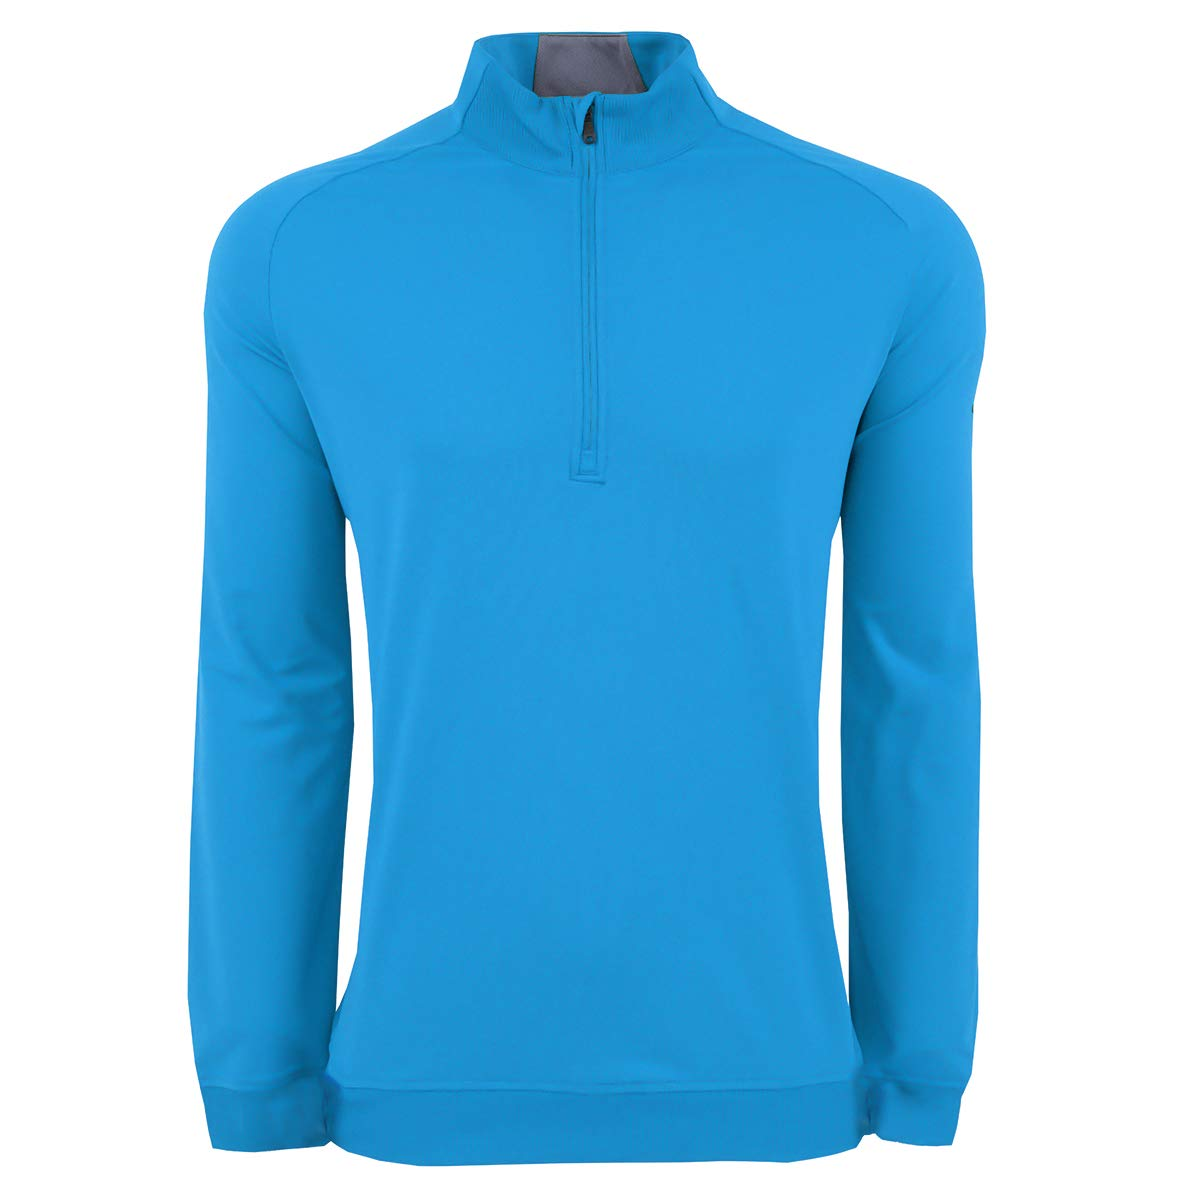 adidas Golf Men's Classic Club 1/4 Zip Pullover Sweater, Small, Bright Blue